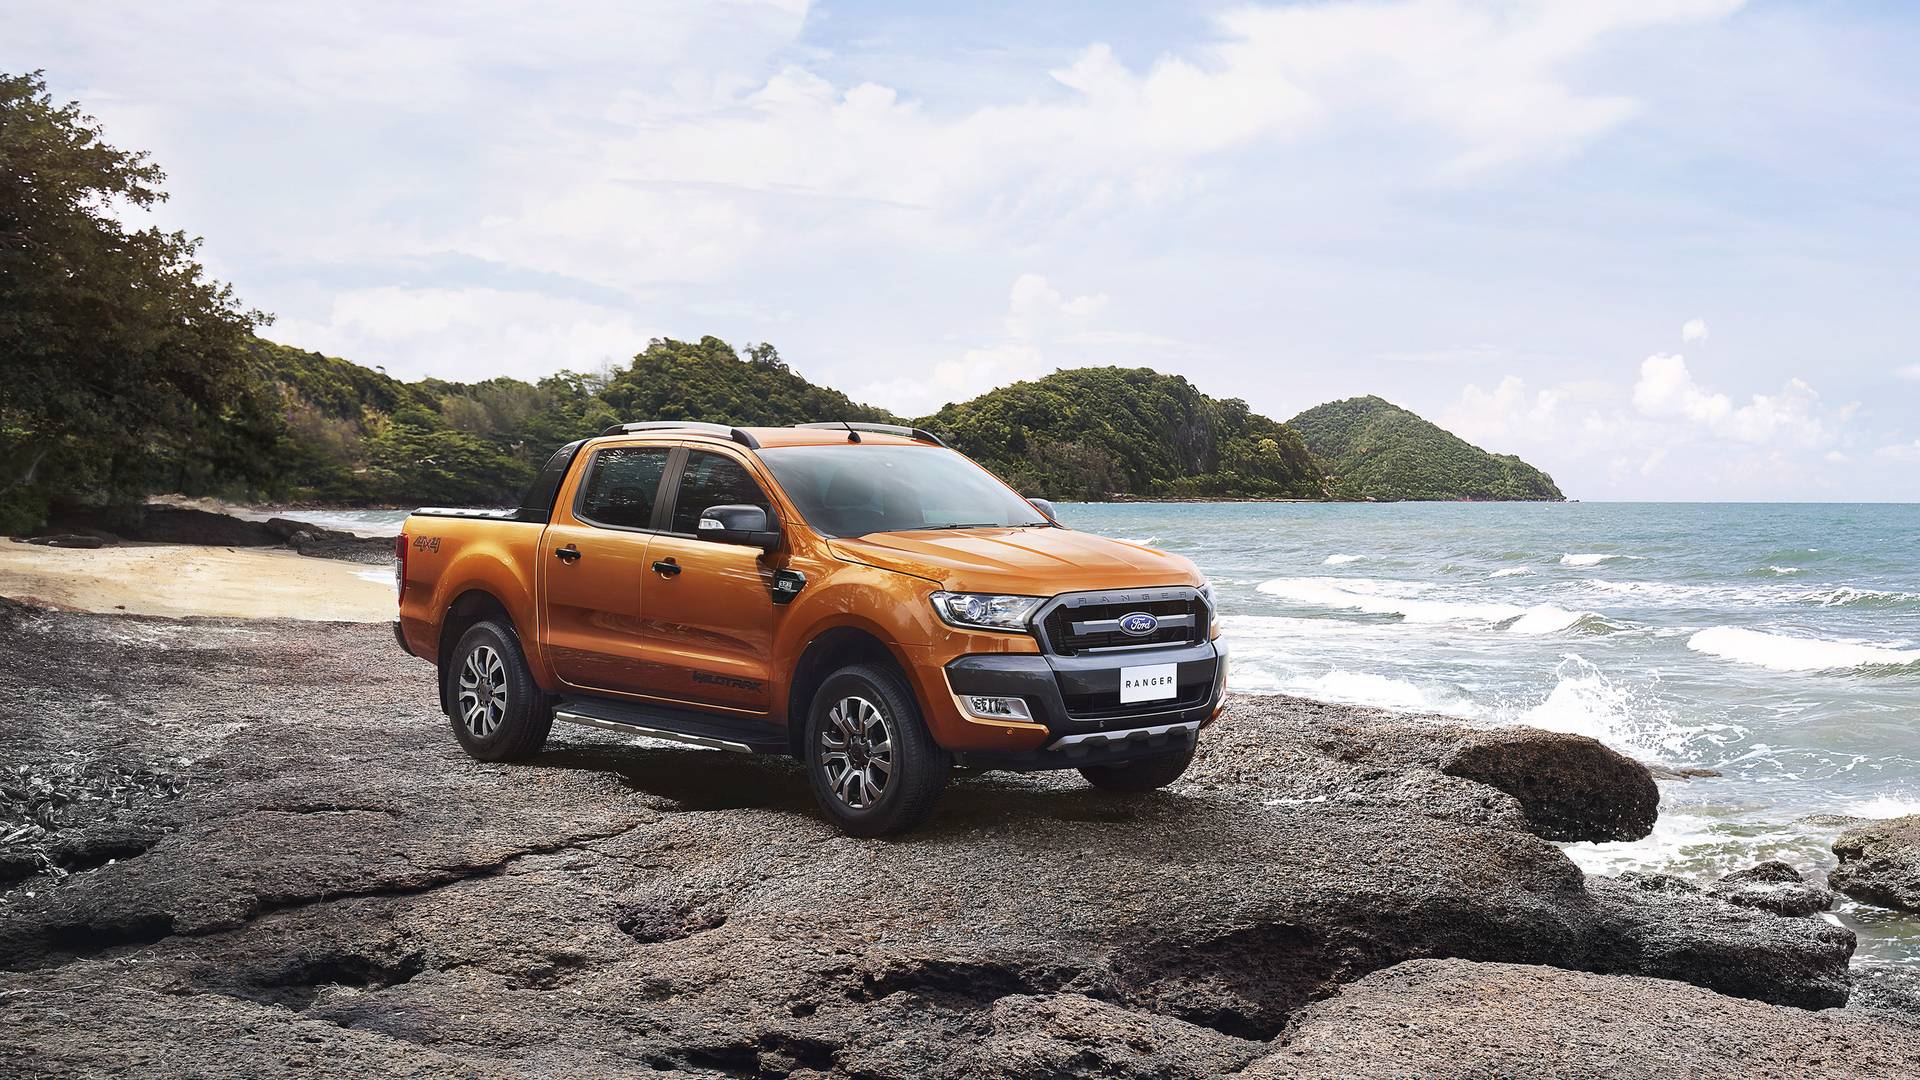 Ultra Hd Wallpaper Of Scout Ranger: Ford Ranger Wallpapers